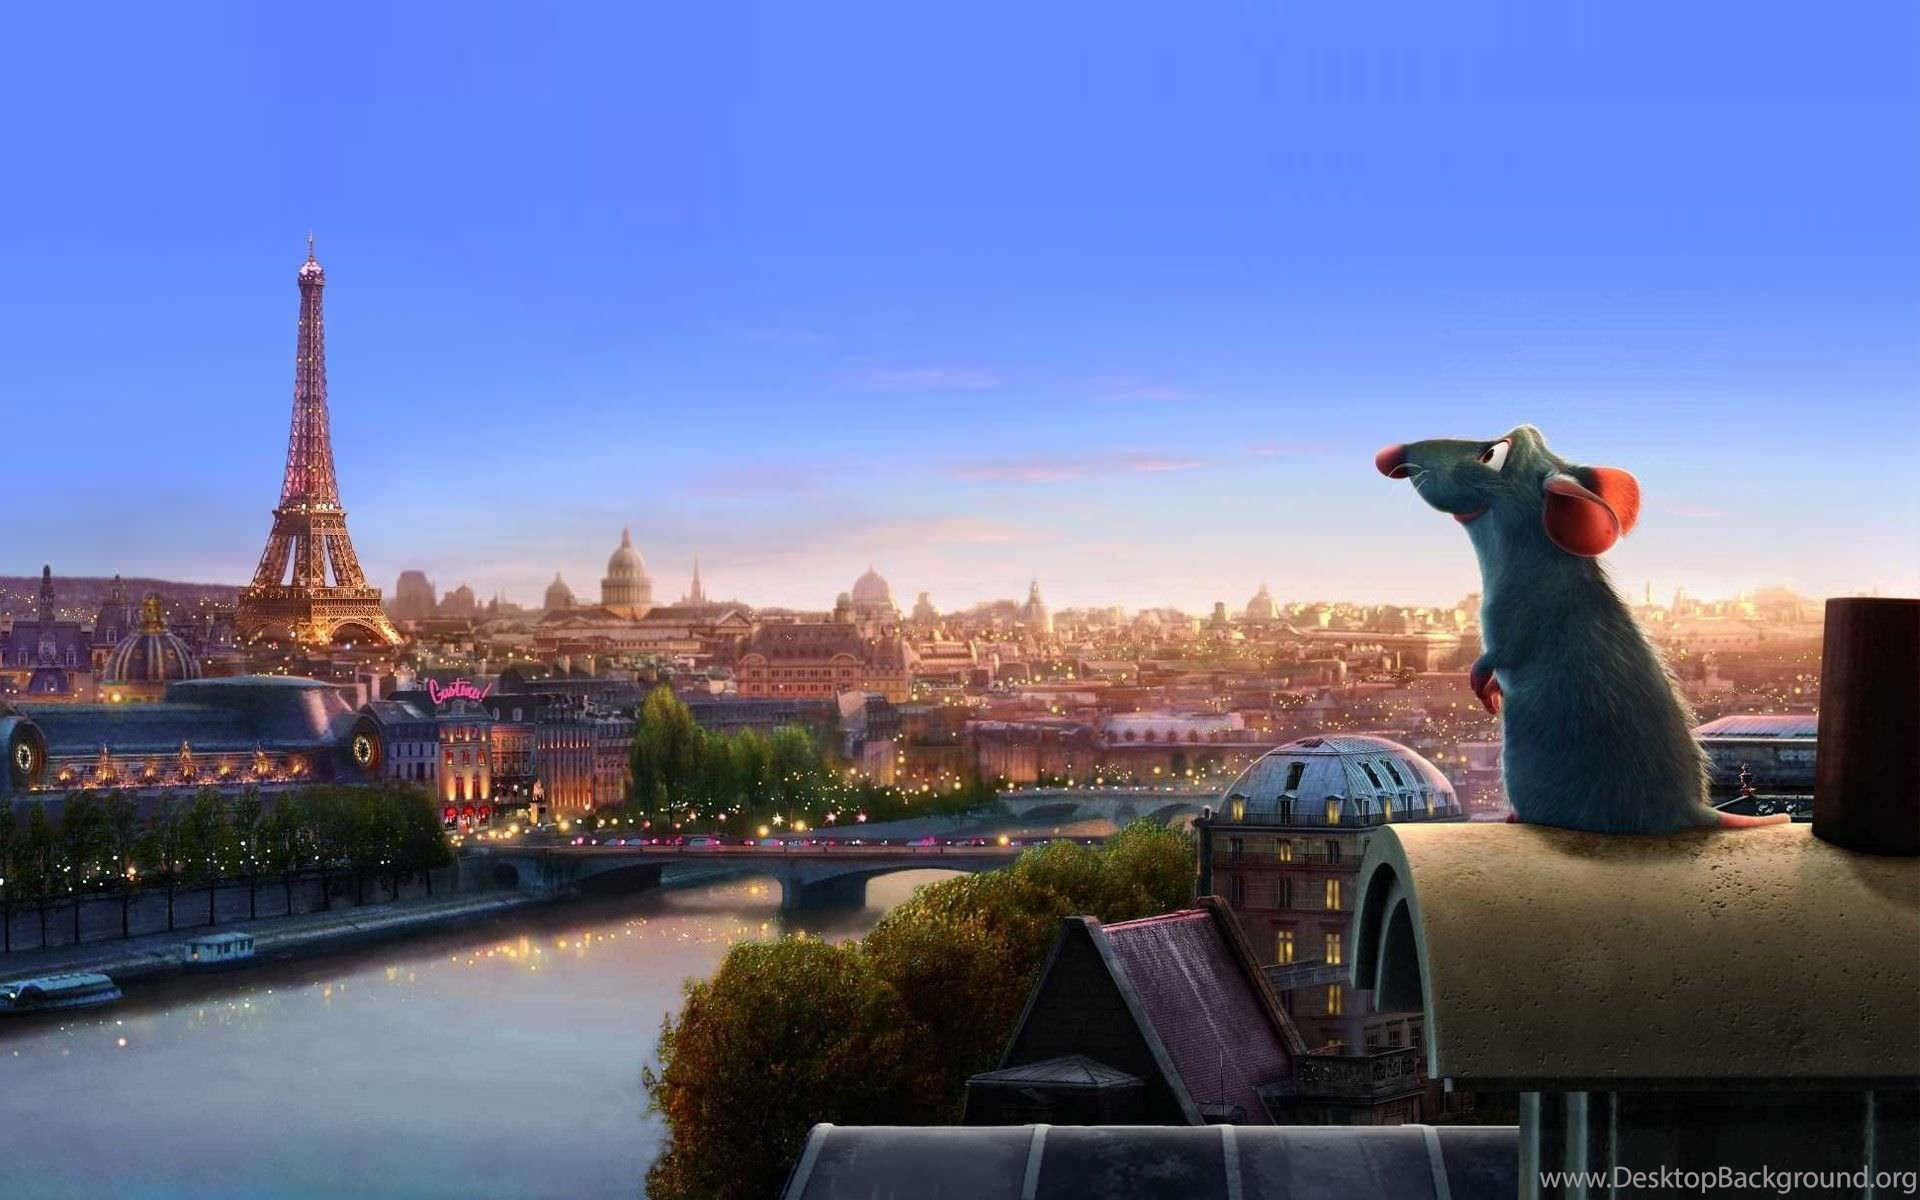 pixar movies hd wallpapers hd wallpapers inx desktop background